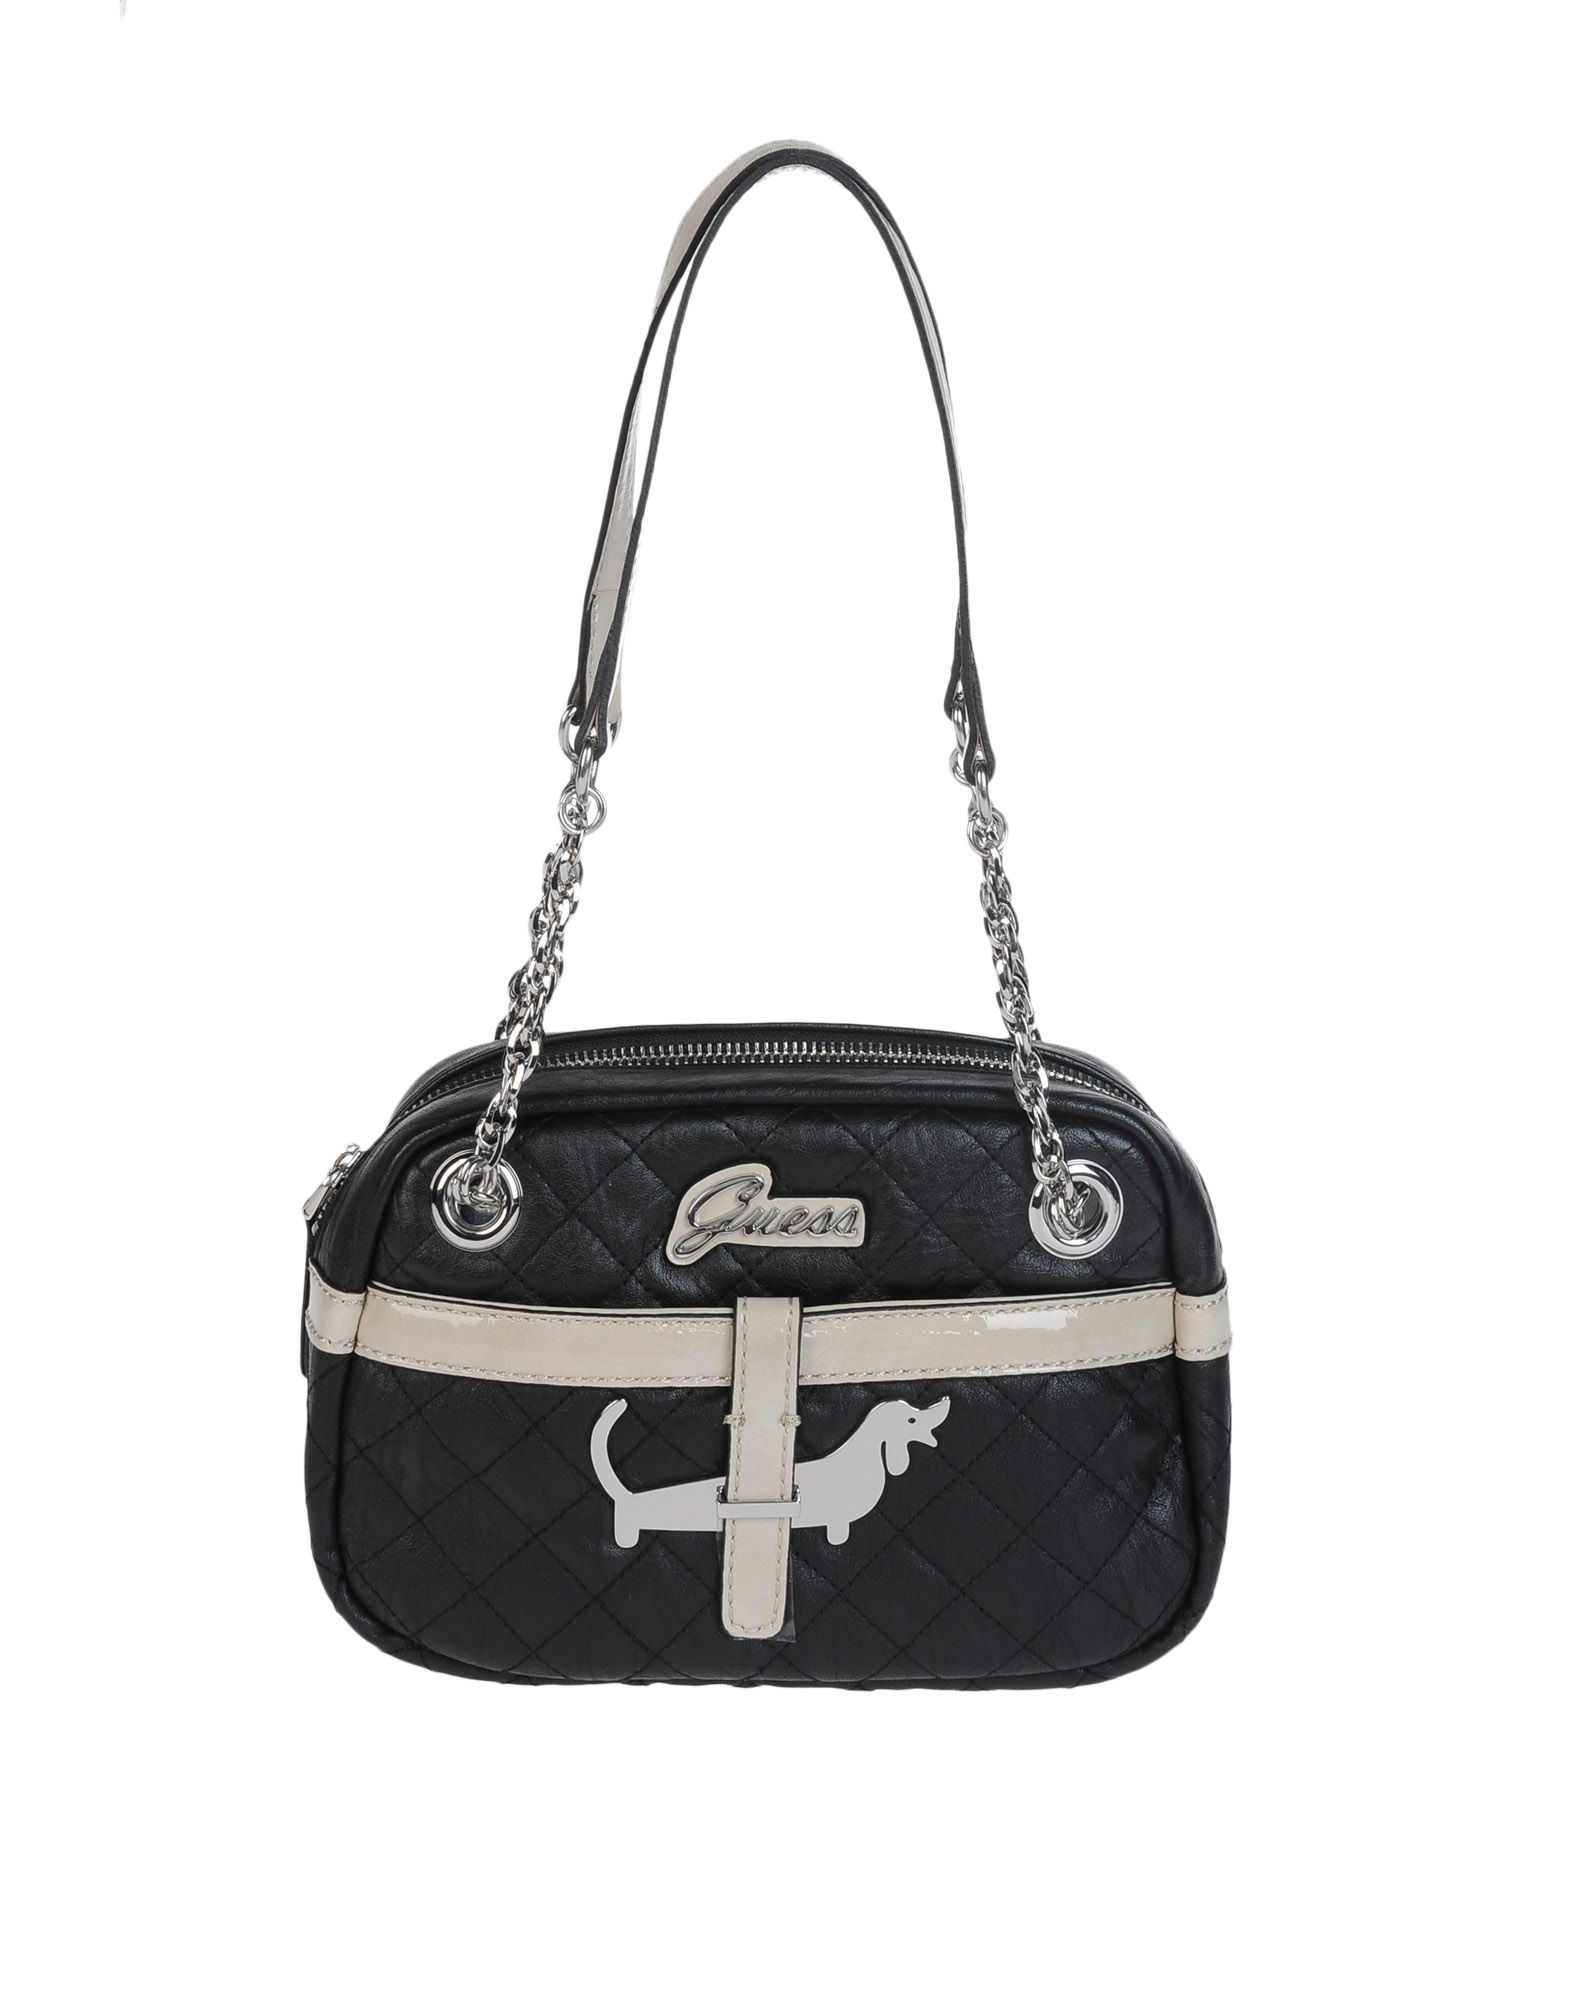 Guess Small Leather Bag in Black (noir)   Lyst